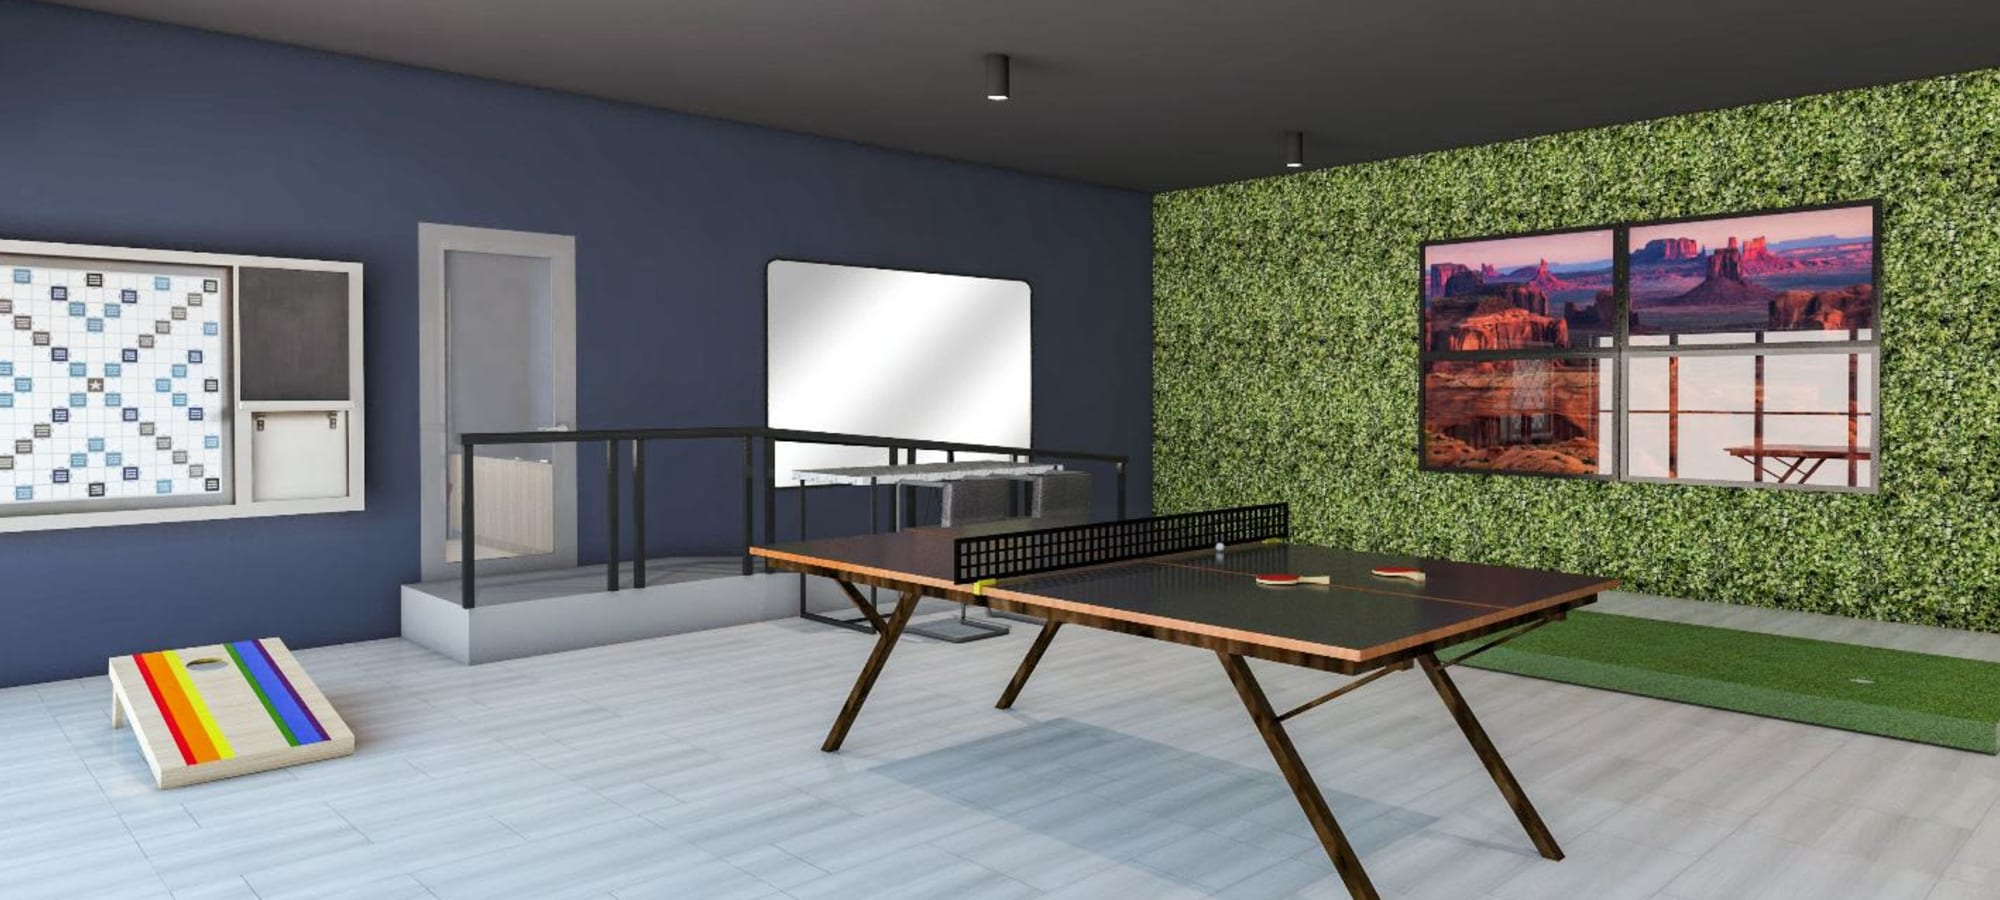 Game room complete with table tennis and cornhole at Tempe Metro in Tempe, Arizona